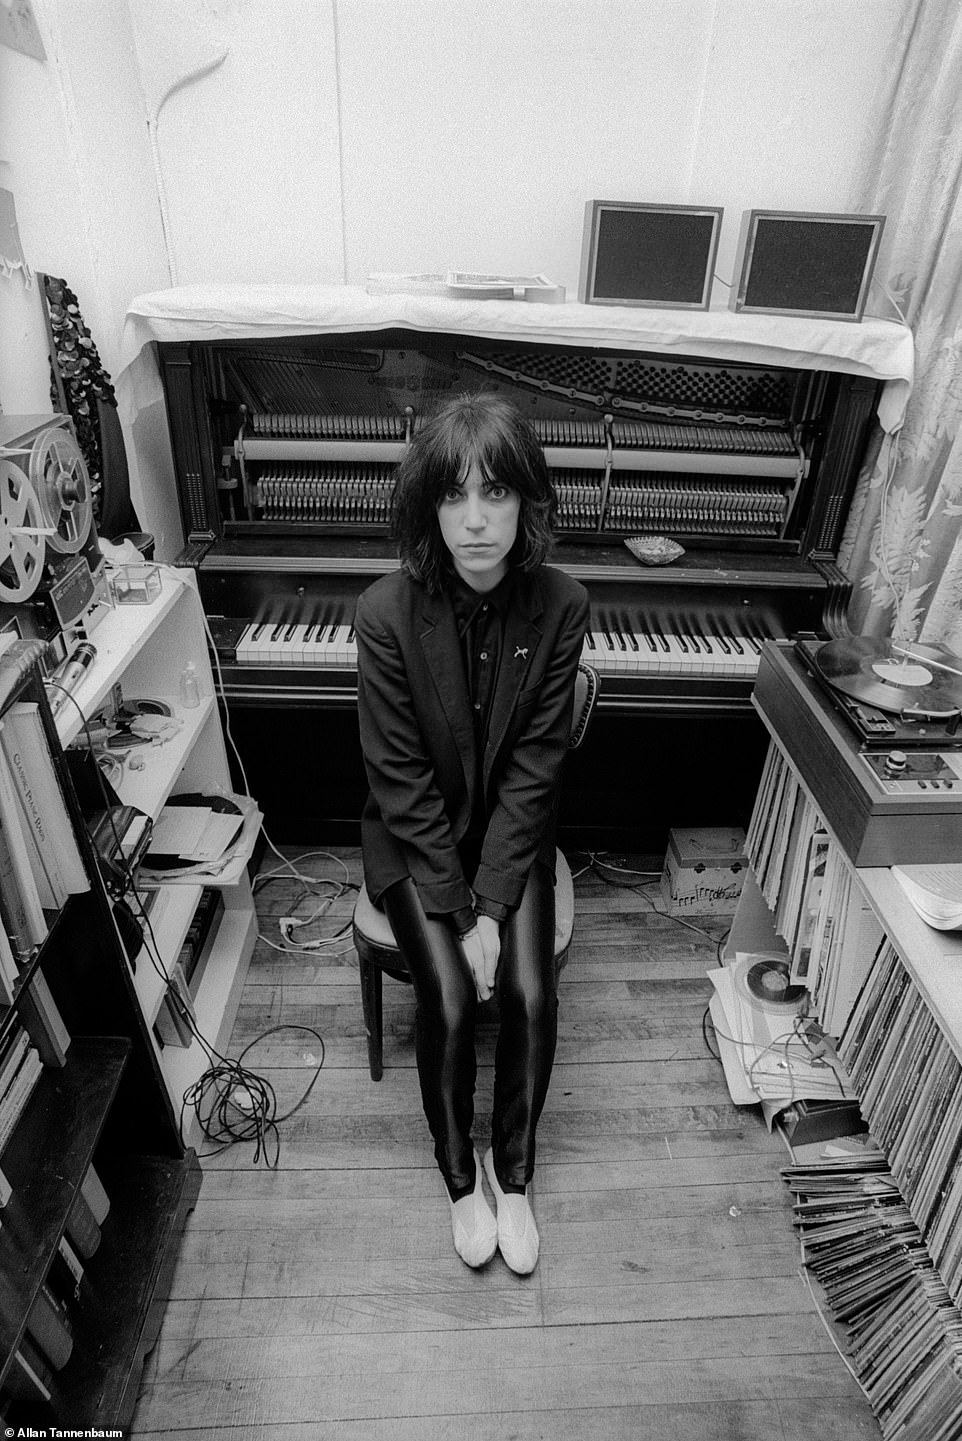 'One of the first things I had done for the SoHo News,' Tannenbaum told DailyMail.com about the above image, Patti Smith in her apartment, NYC, 1974.Tannenbaum knew Lenny Kaye, the guitarist in her group and after a show they went back to Smith's'small typical Village apartment,' he recalled. 'We were just hanging out and talking. I really like that portrait of her.' The next year, Smith released with her group their seminal debut album, Horses